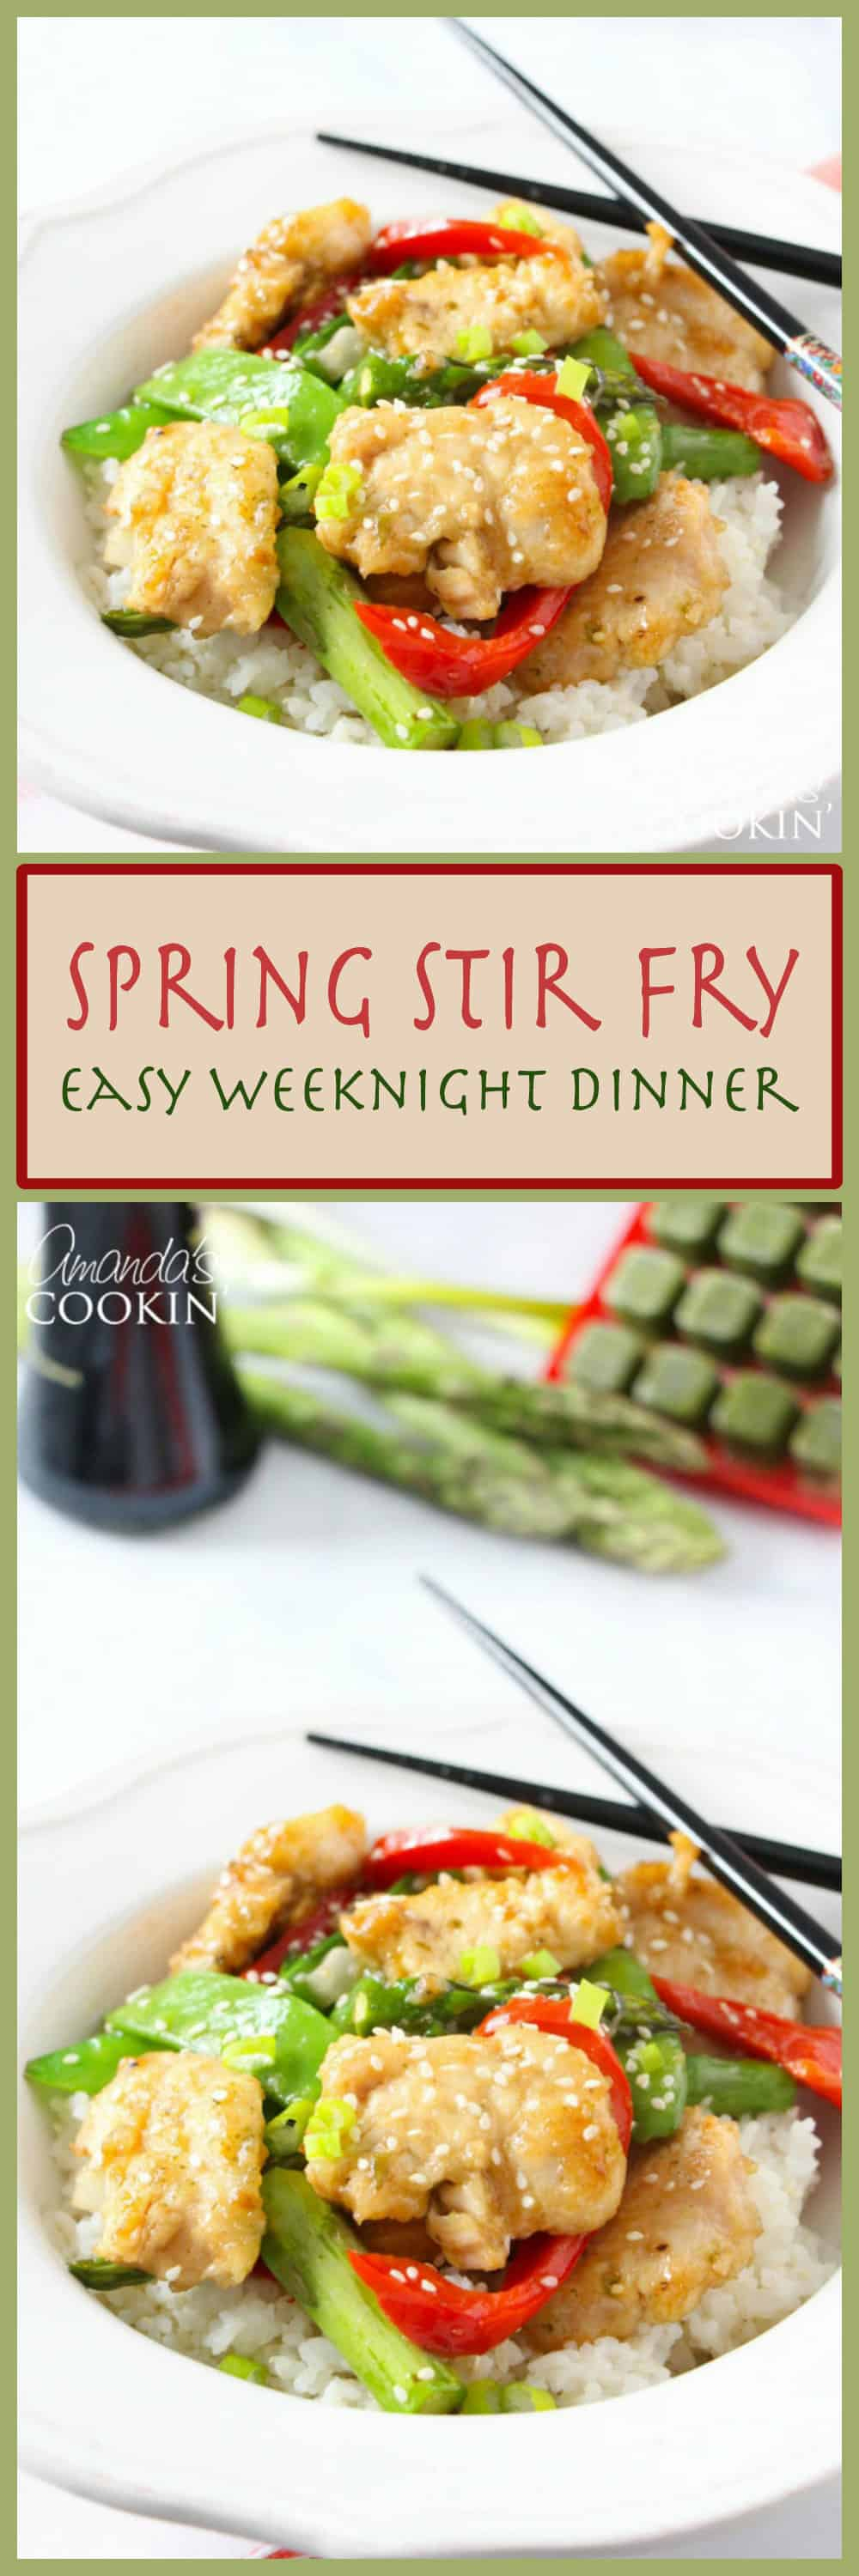 This beautiful spring stir fry includes fresh spring vegetables such as asparagus and pea pods with some colorful peppers to brighten things up!